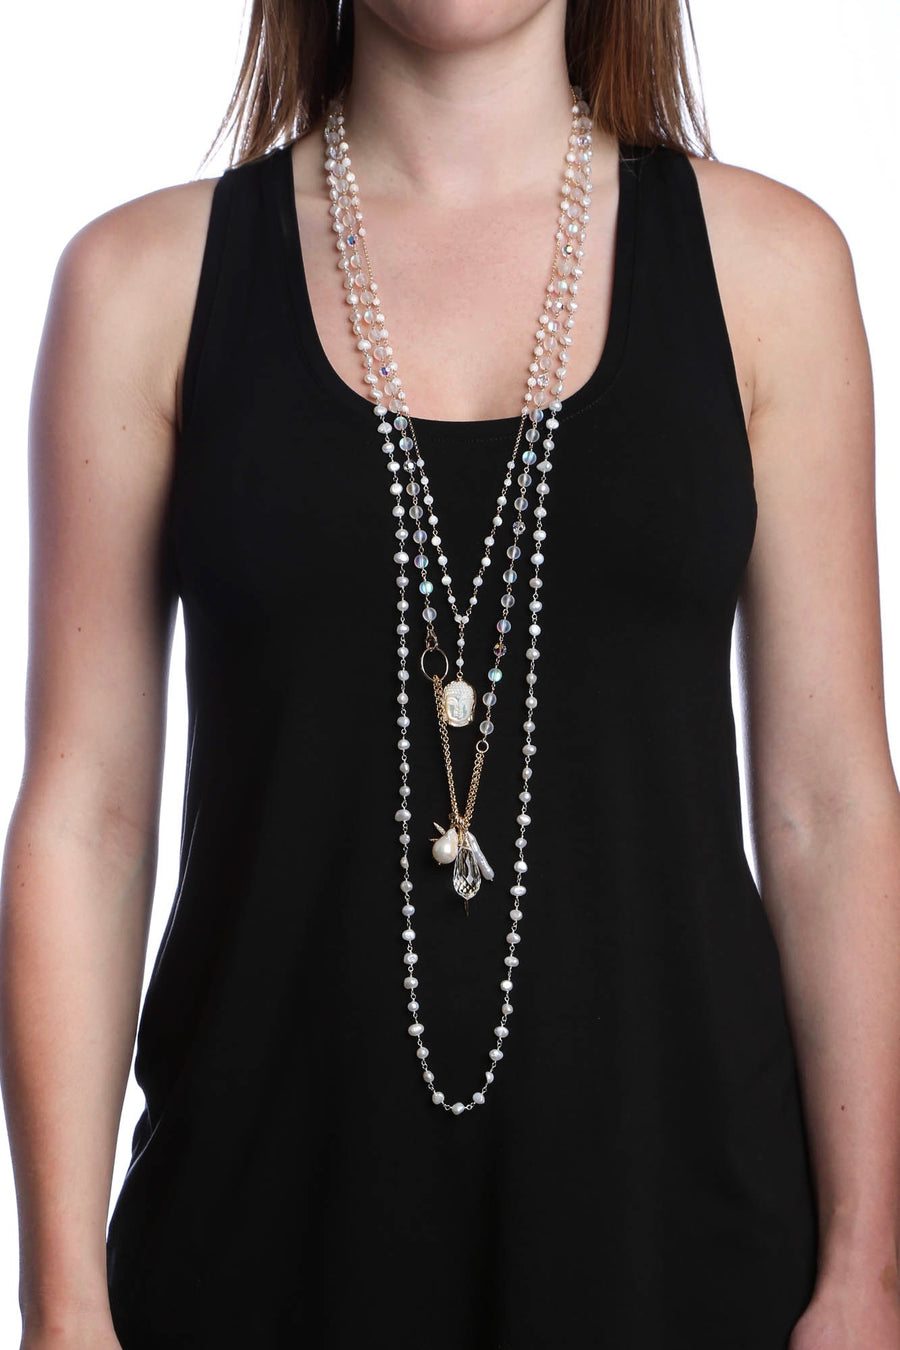 Freshwater Pearl Beaded Necklace